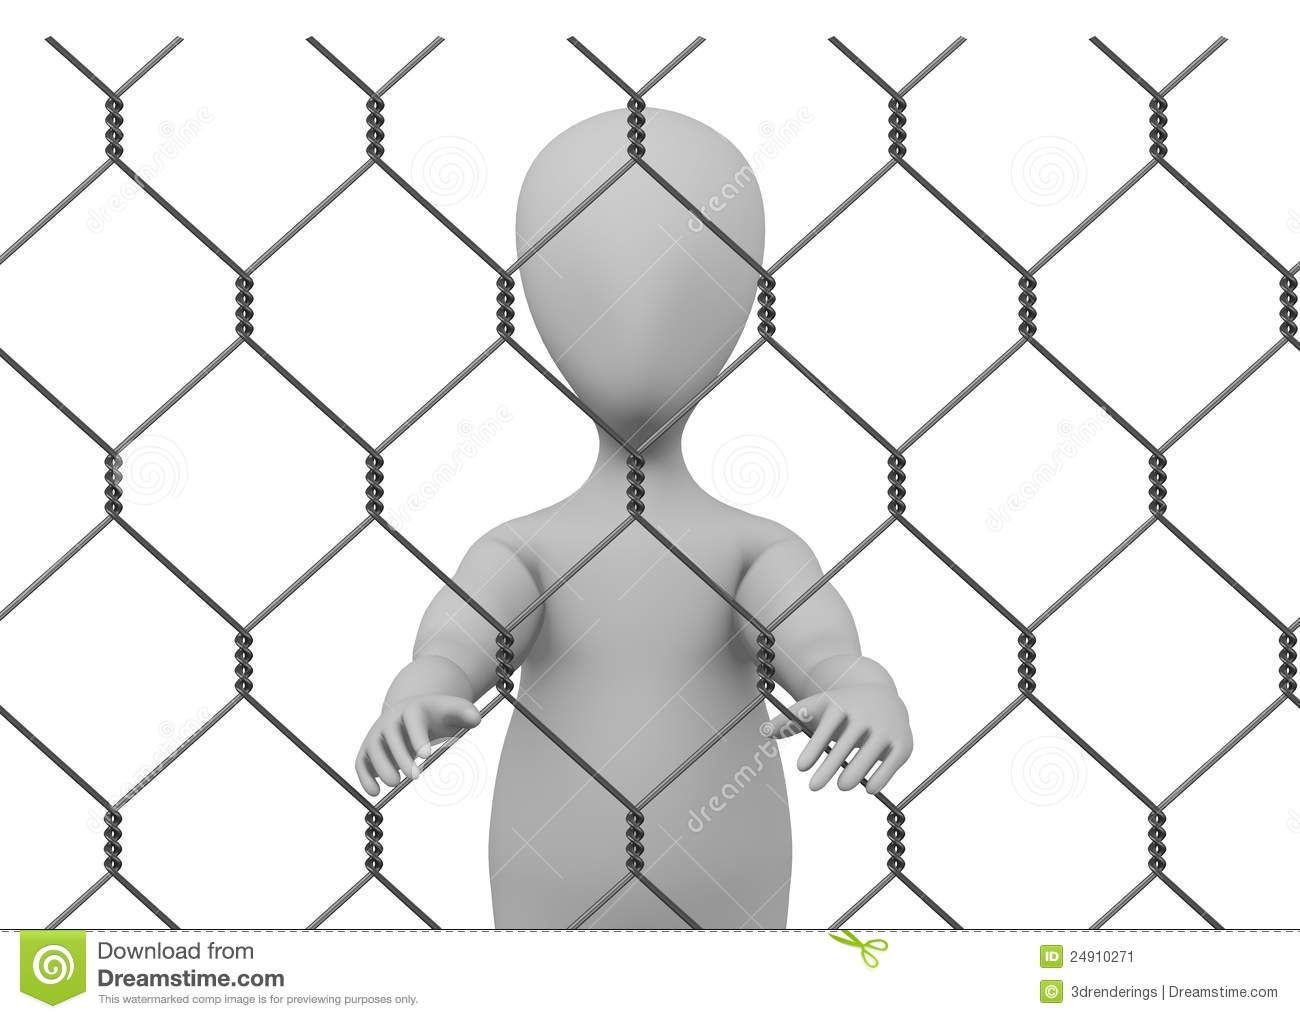 Cartoon character with chain fence prisoner insi stock